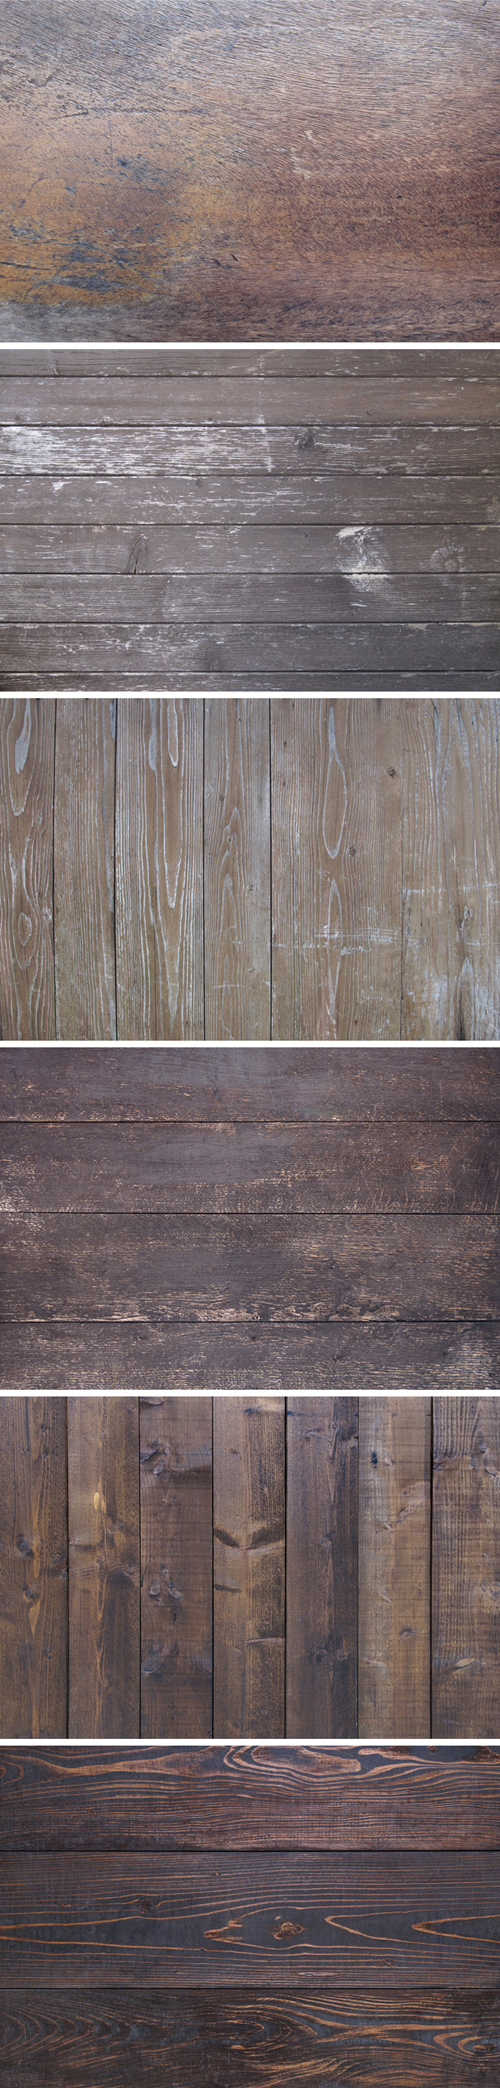 vintage-wood-texture-free-high resolution-grunge-vintage-textures-backgrounds